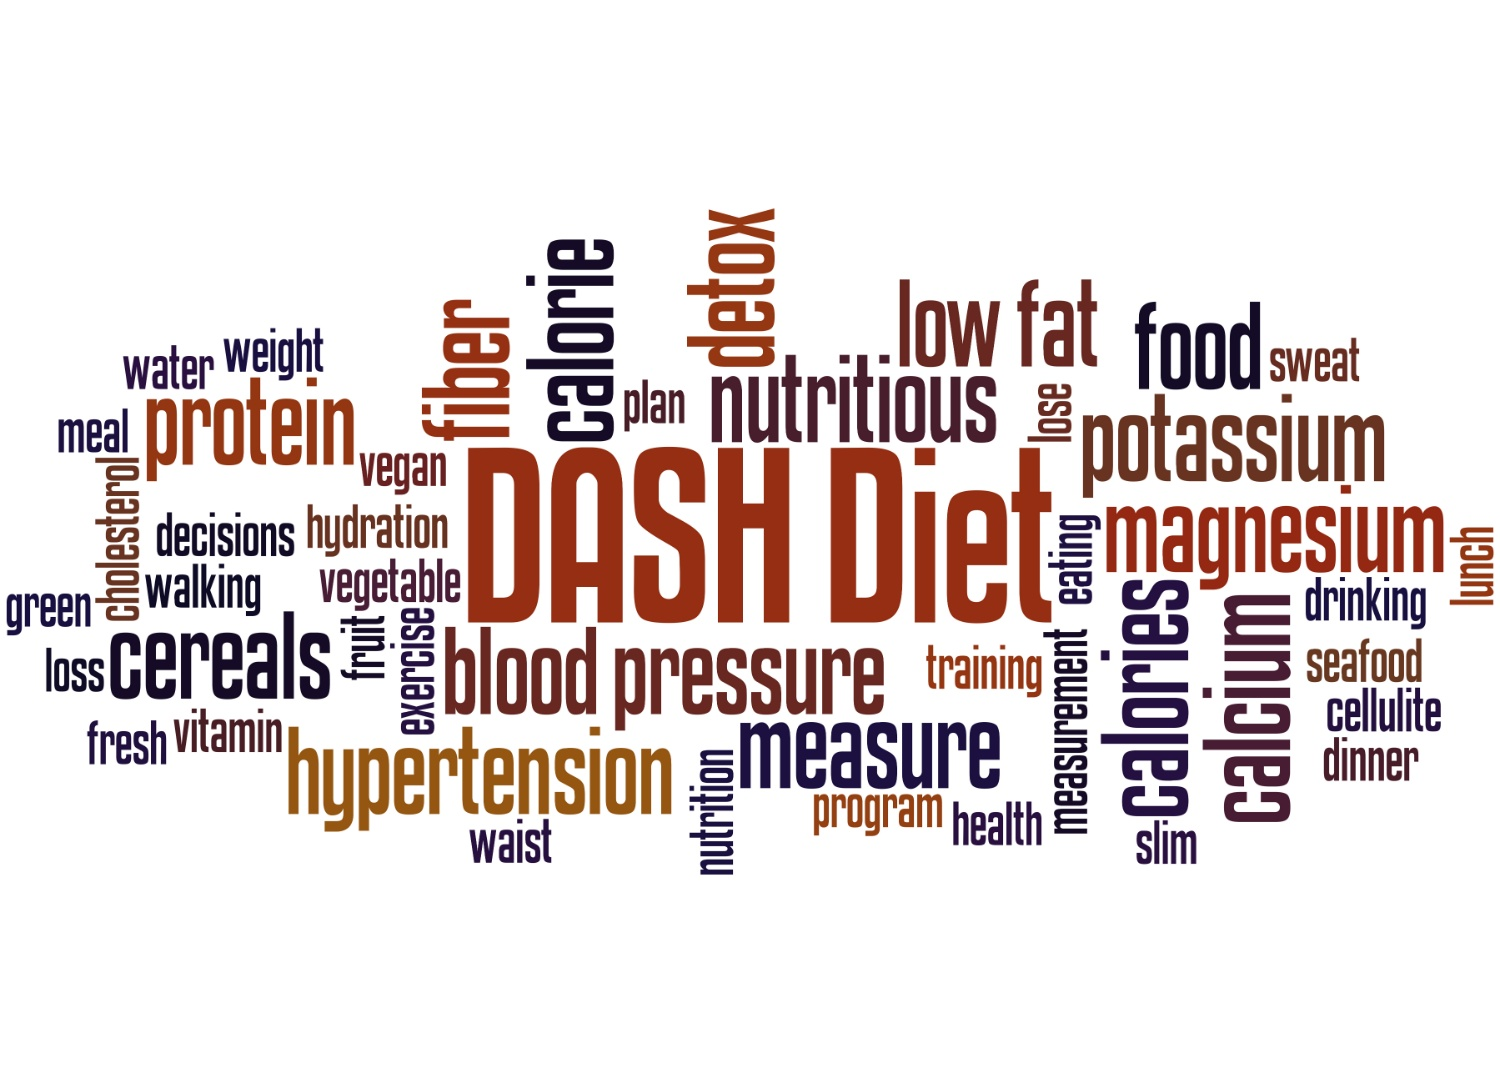 DASH Diet Food List: What You Should Eat to Control Hypertension